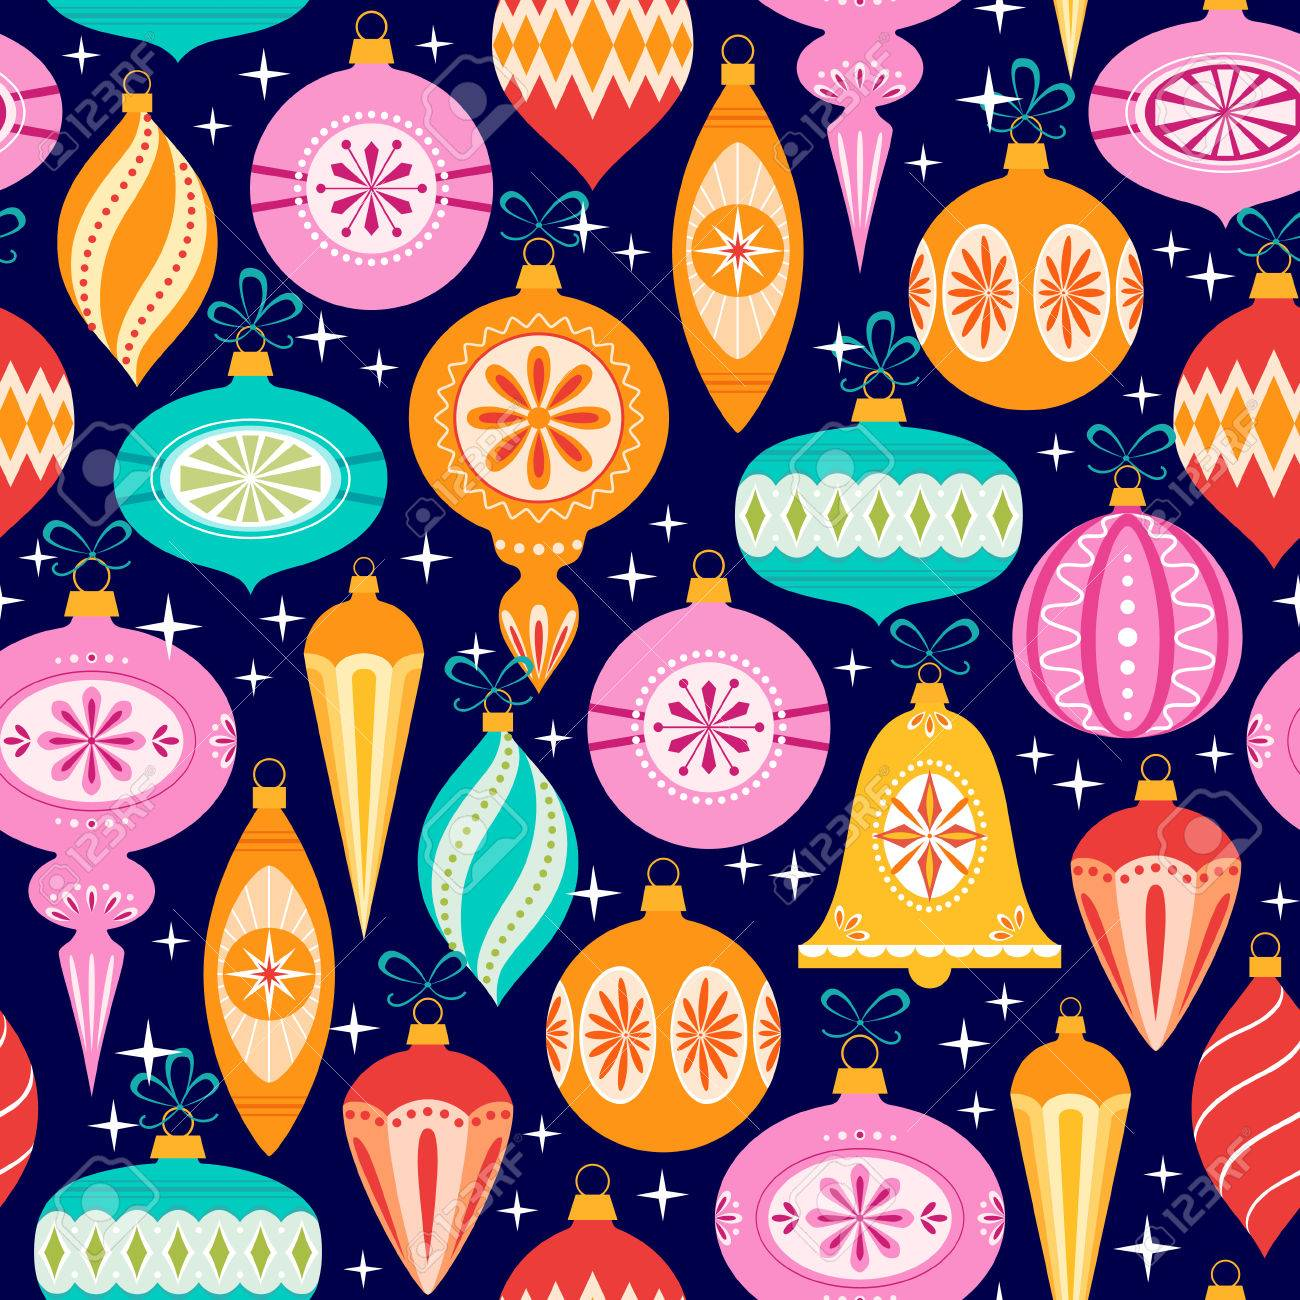 Bright Christmas pattern with multicolored ornaments on dark blue background. - 47012849